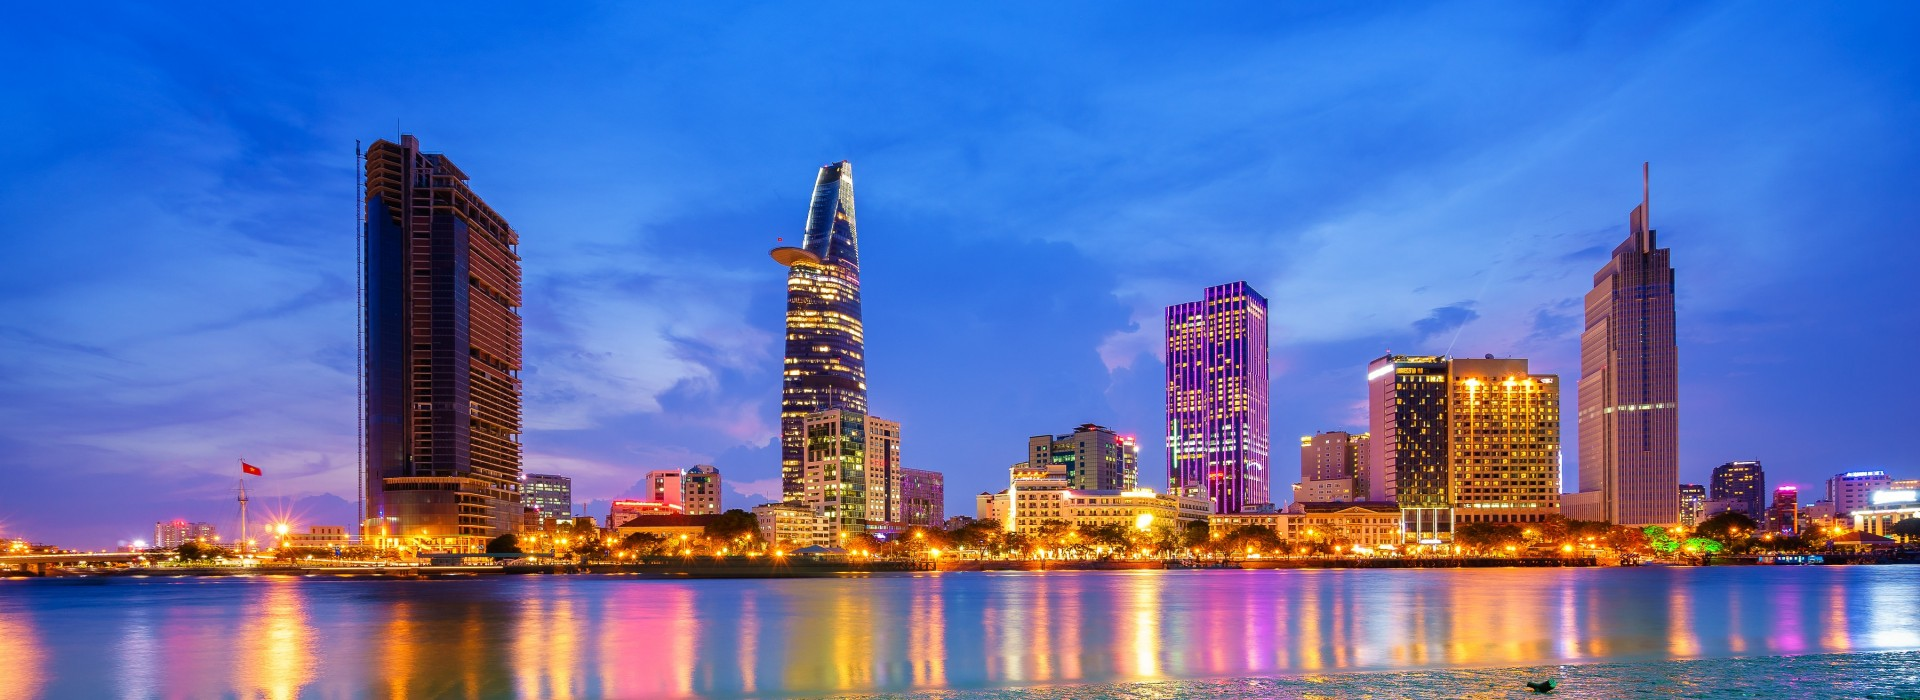 10 Best Tours and Trips in Ho Chi Minh City 2019/2020 – Compare Prices |  Bookmundi